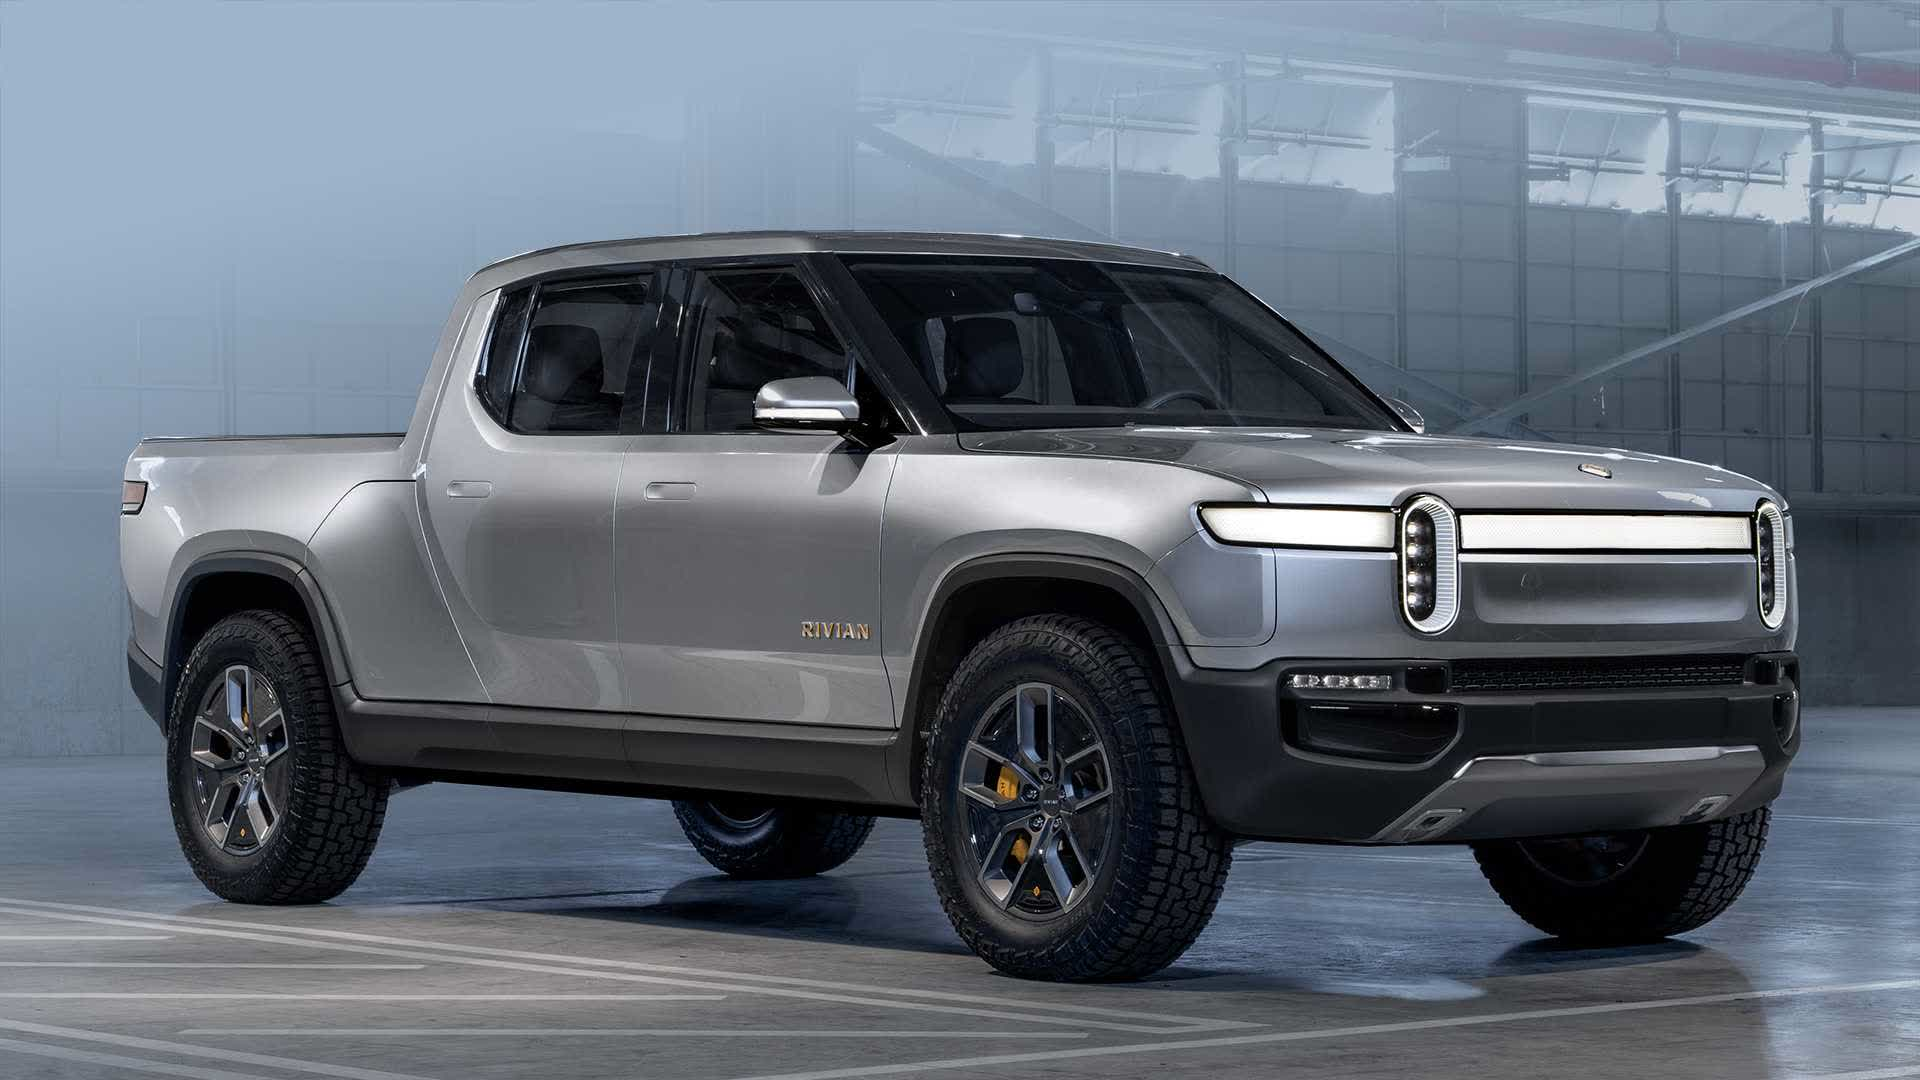 Rivian delays the launch of its R1T pickup truck, now ships in September